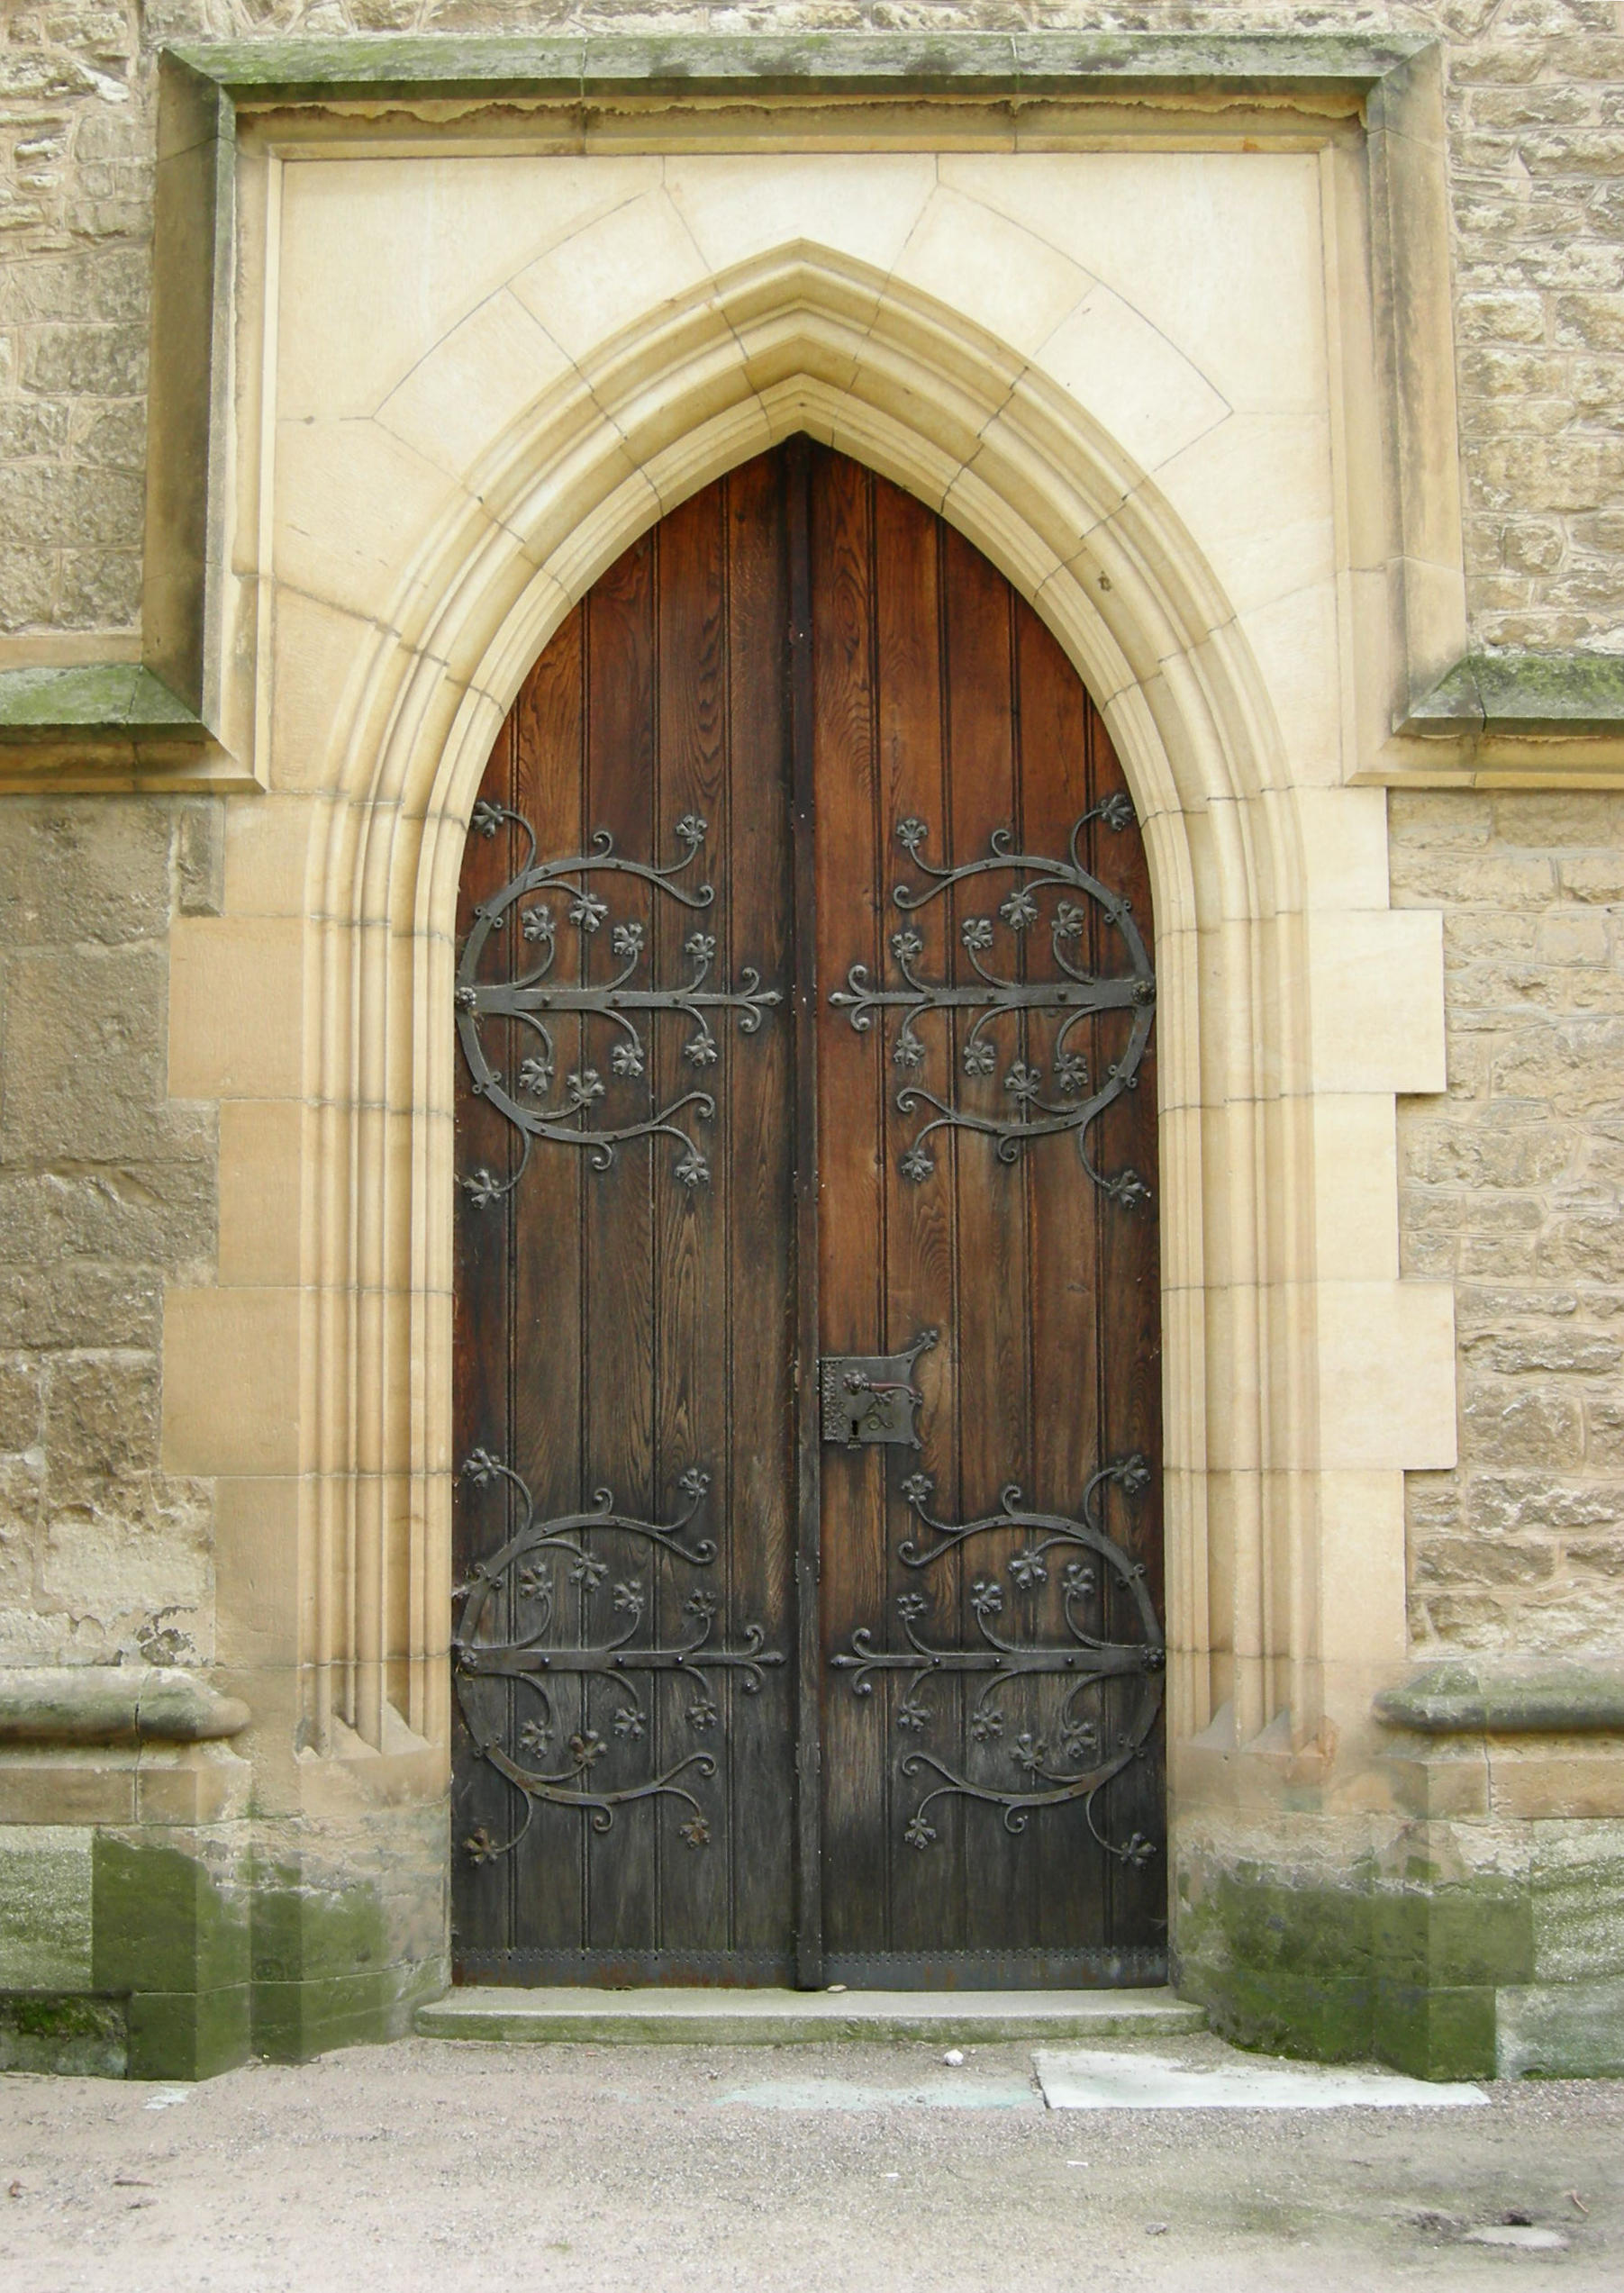 ... Stock Cathedral\u0027s Door by Ireth-stock & Stock: Cathedral\u0027s Door by Ireth-stock on DeviantArt